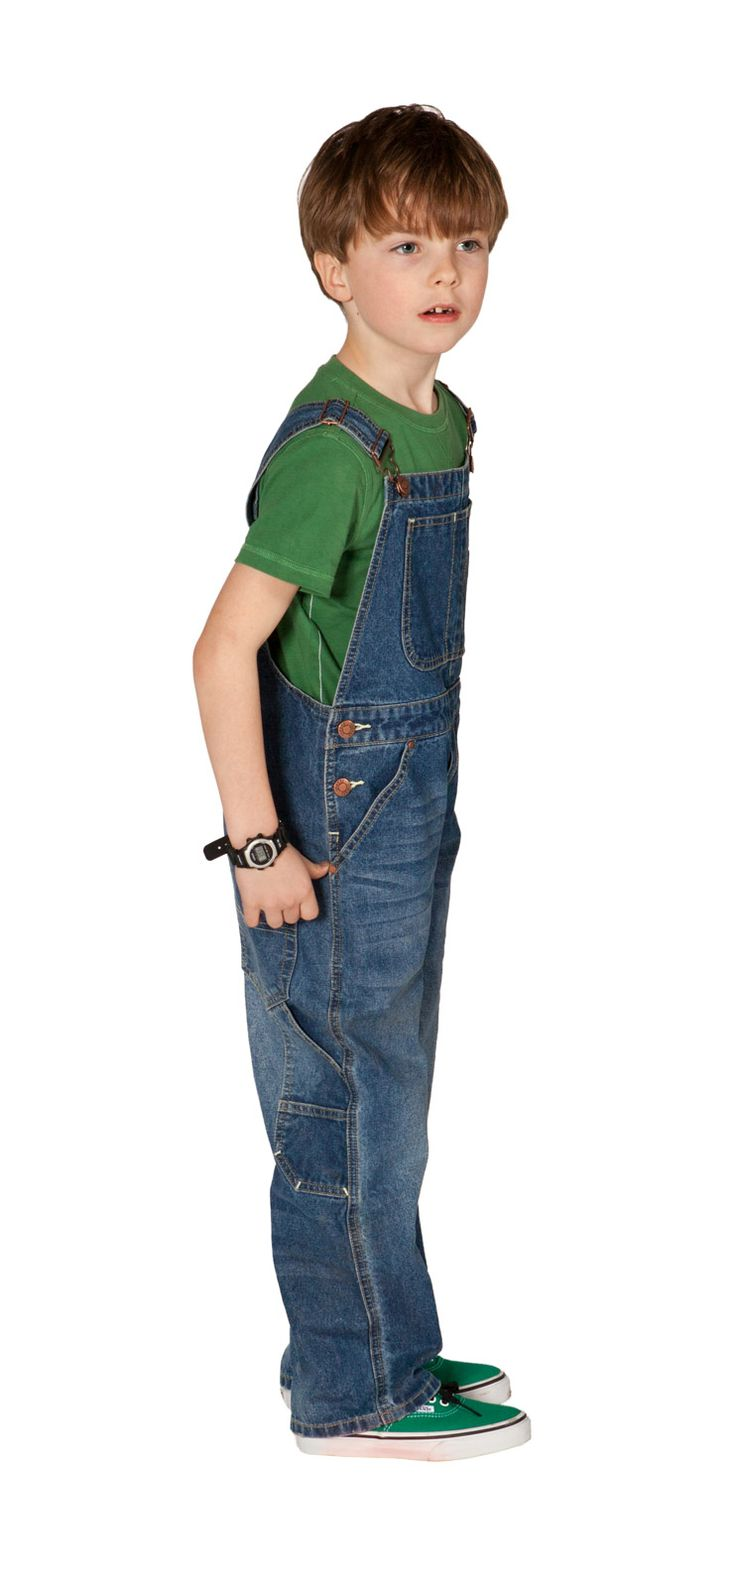 Shop for kids overalls online at Target. Free shipping on purchases over $35 and save 5% every day with your Target REDcard.